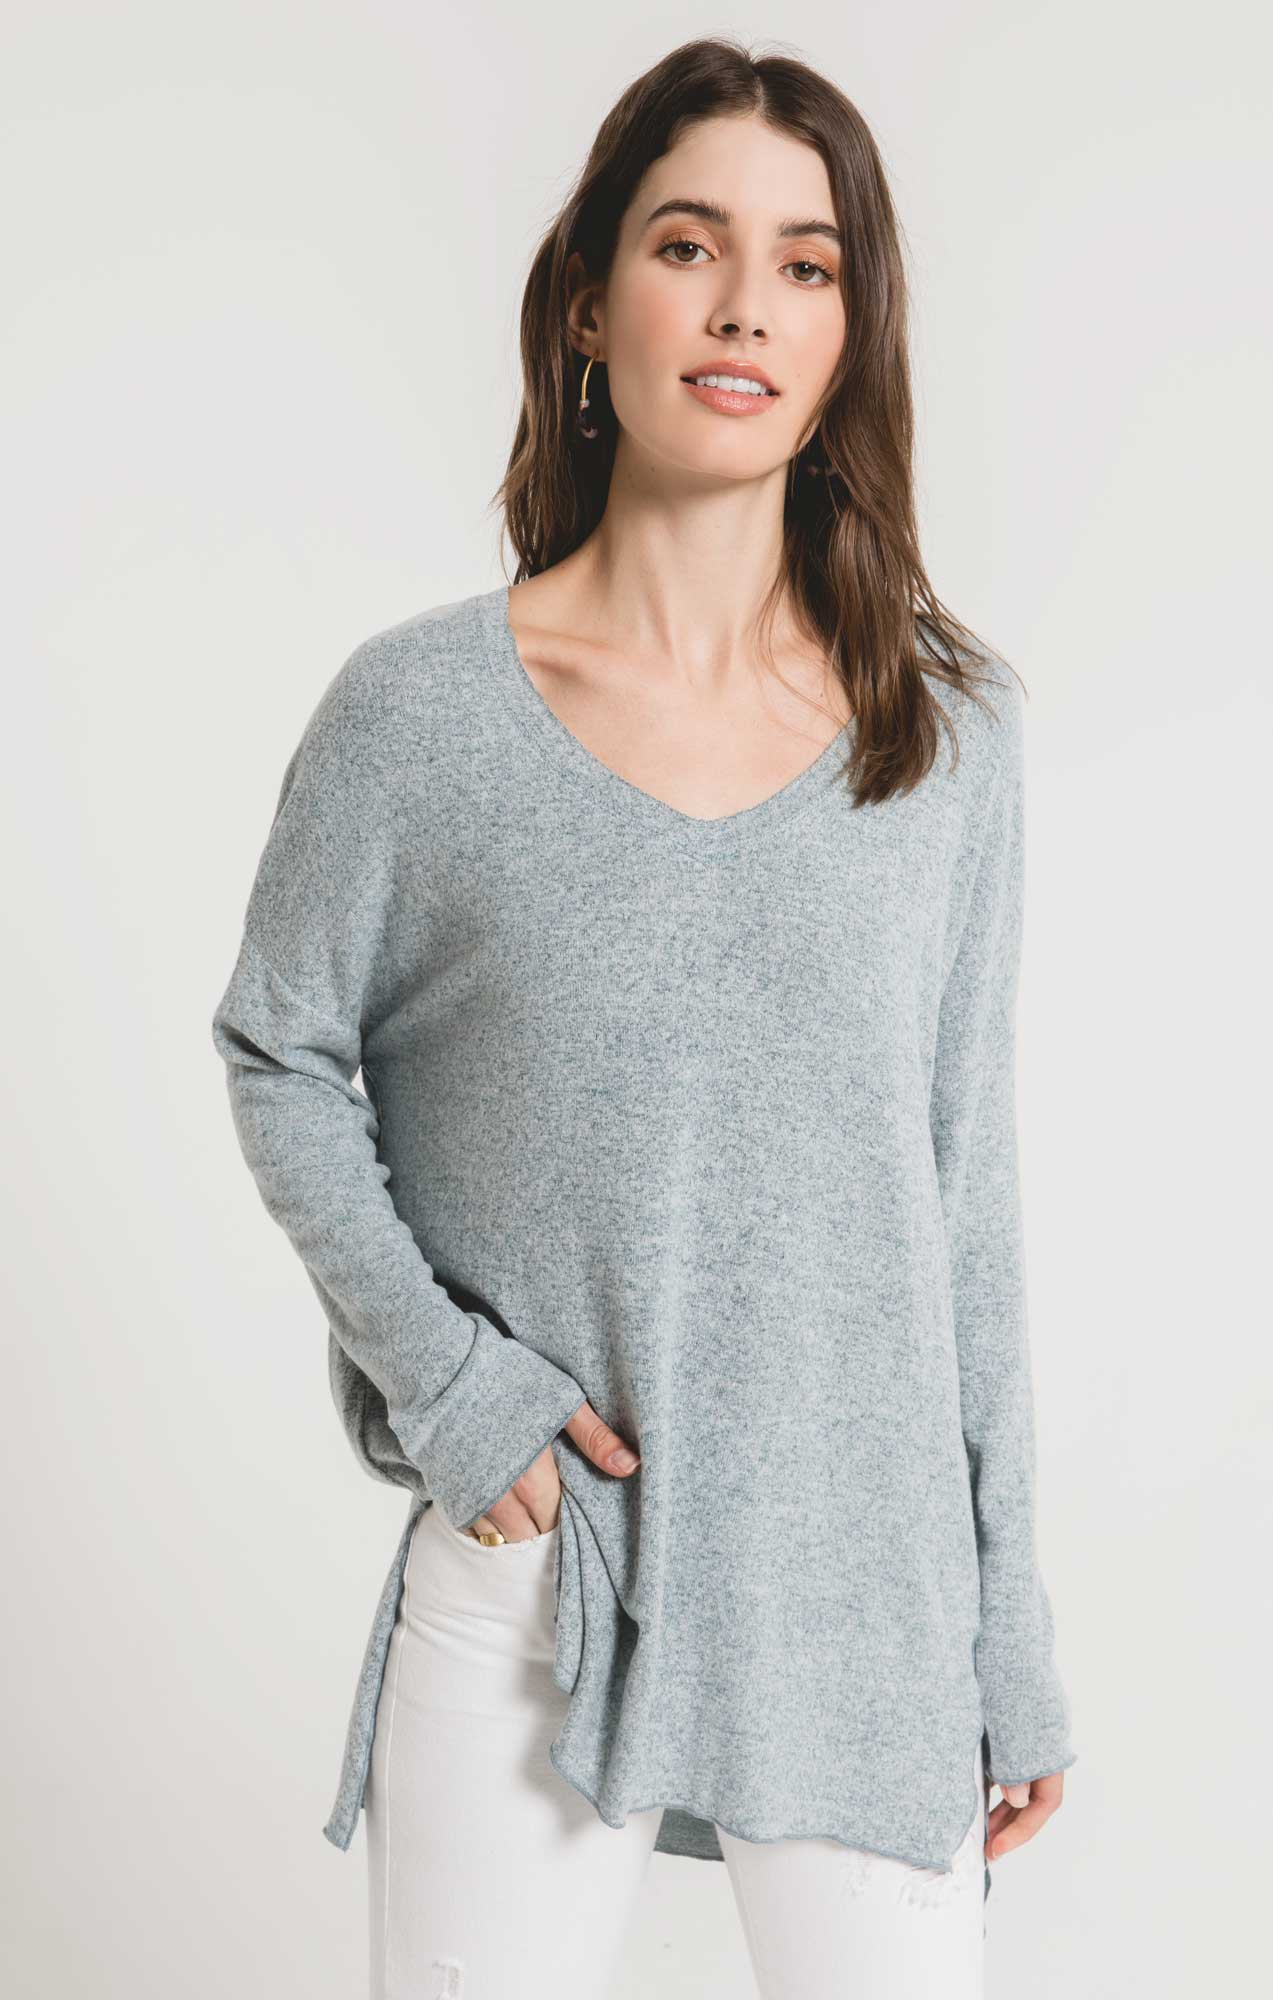 Tops Marled Sweater Knit V-Neck Tunic Storm Blue/Ivory